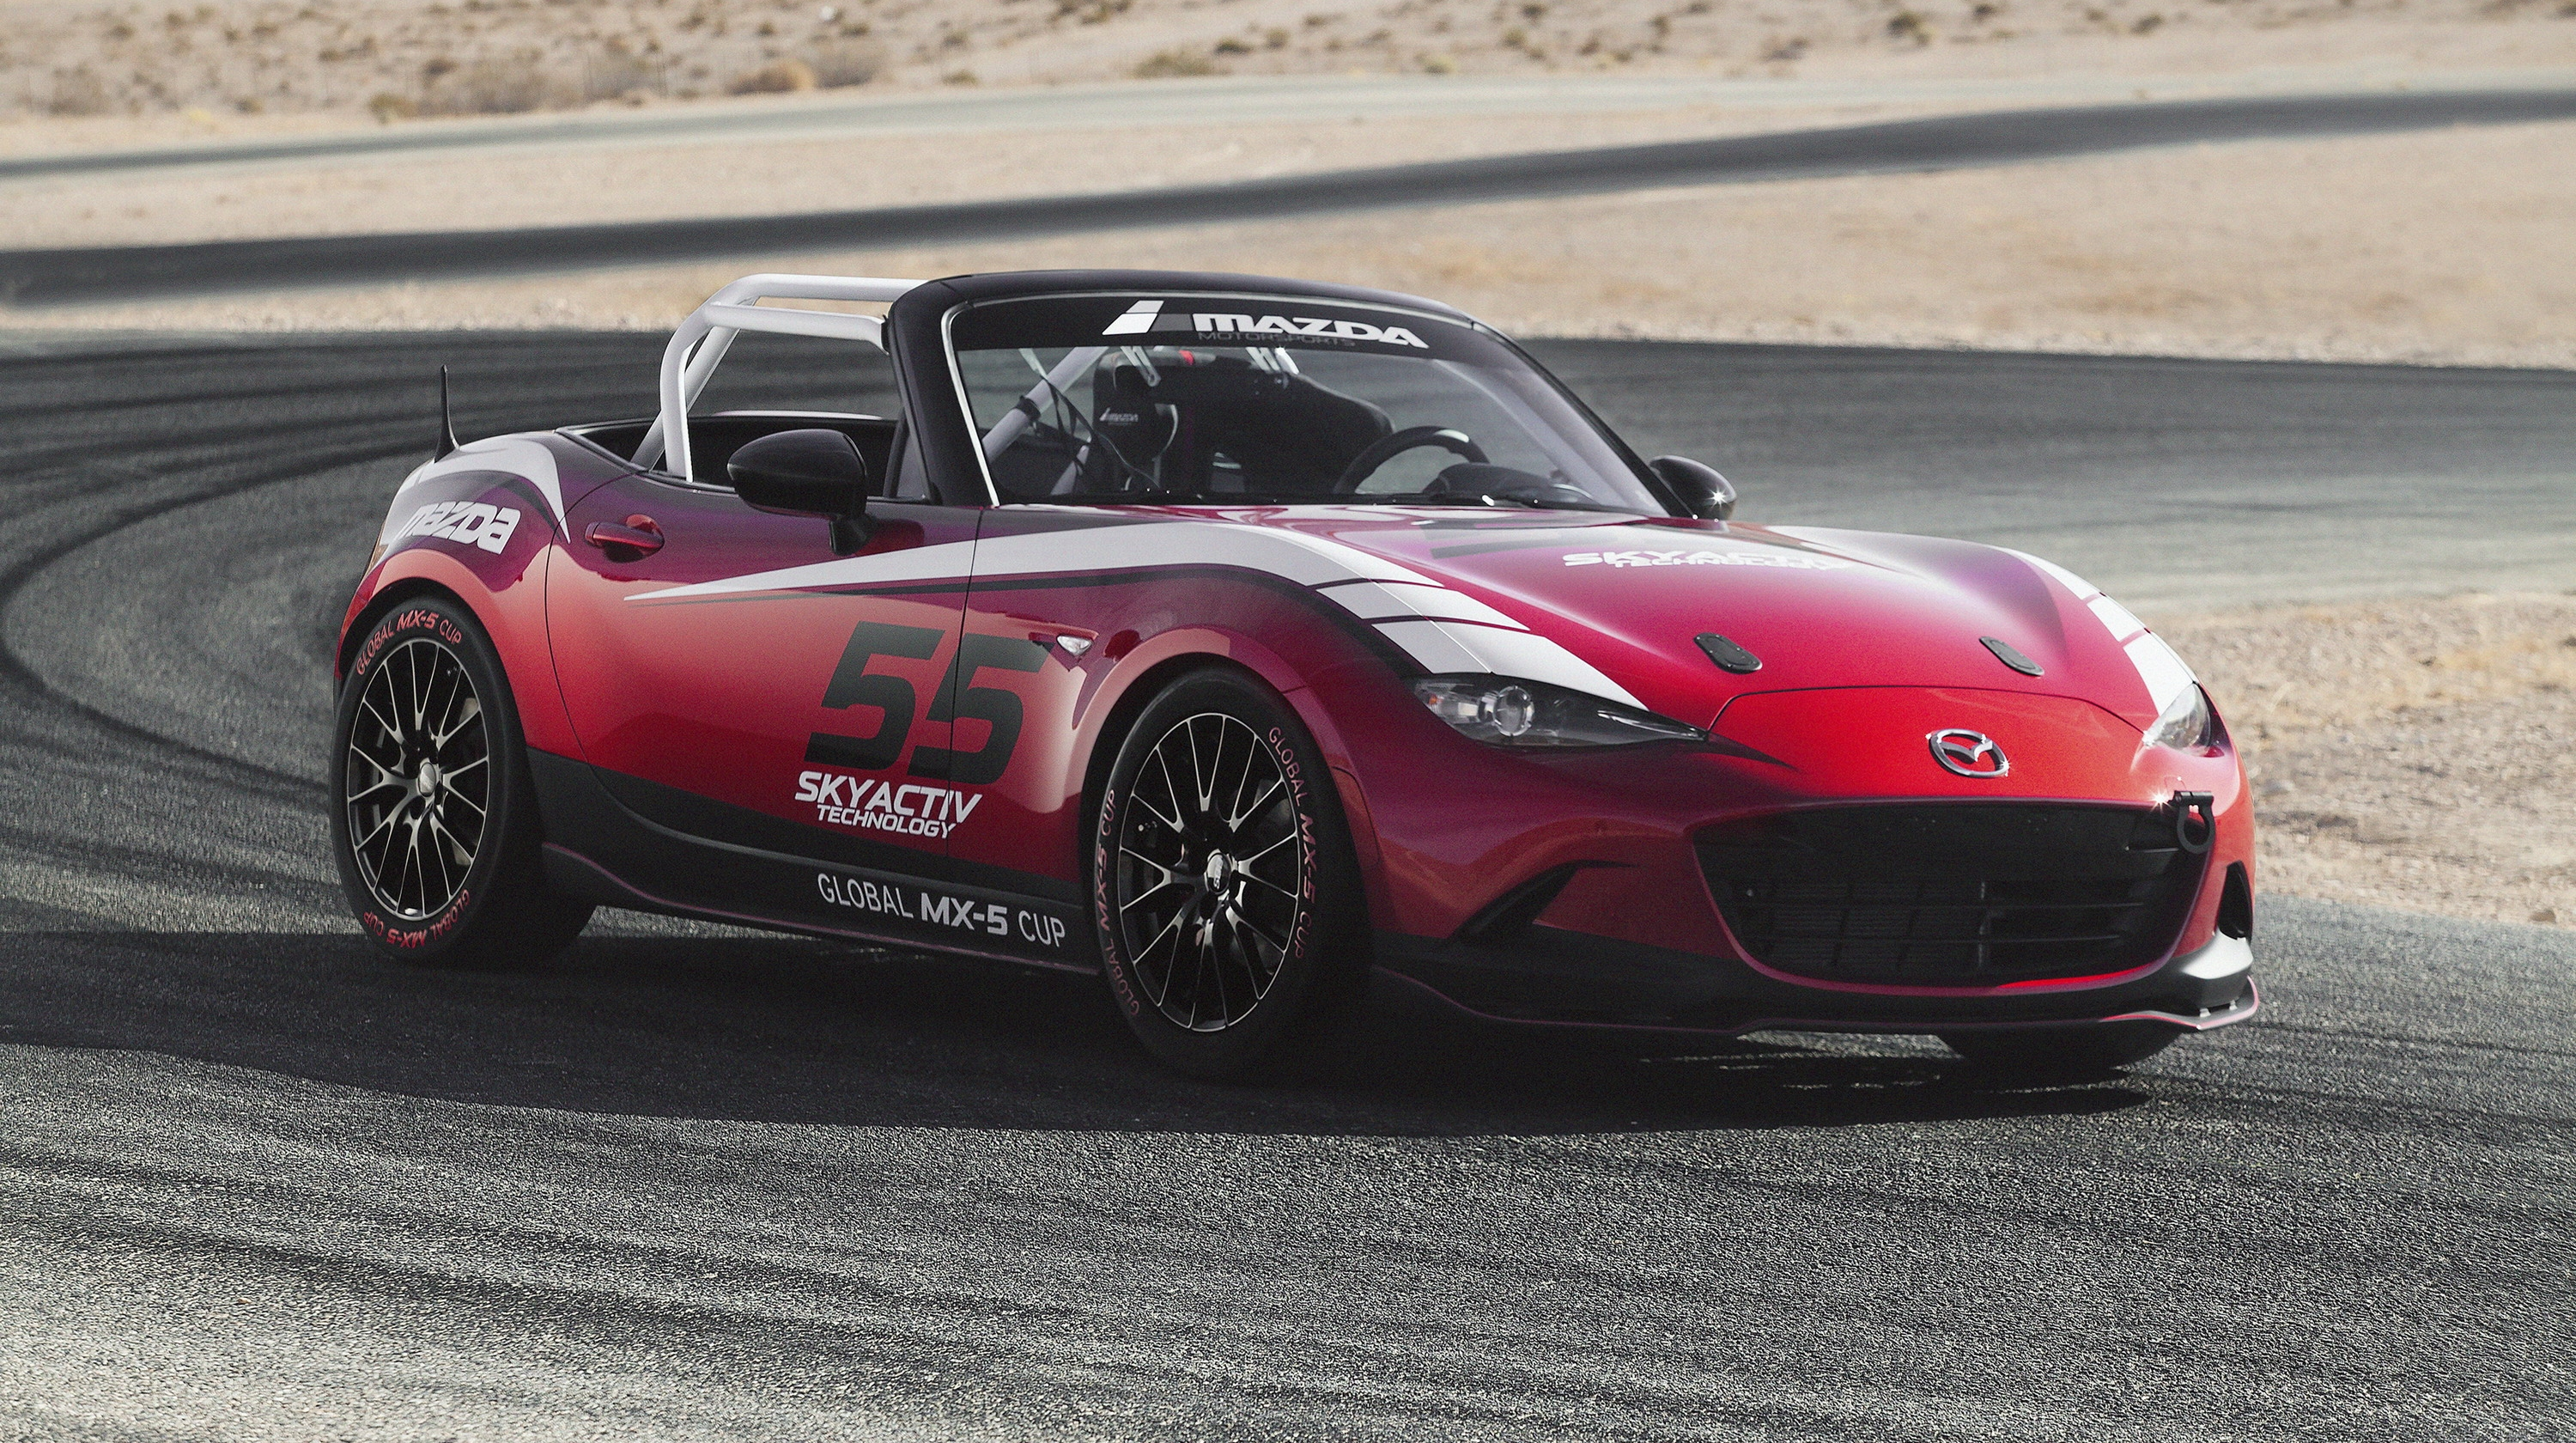 2015 mazda mx 5 cup racecar review gallery top speed. Black Bedroom Furniture Sets. Home Design Ideas